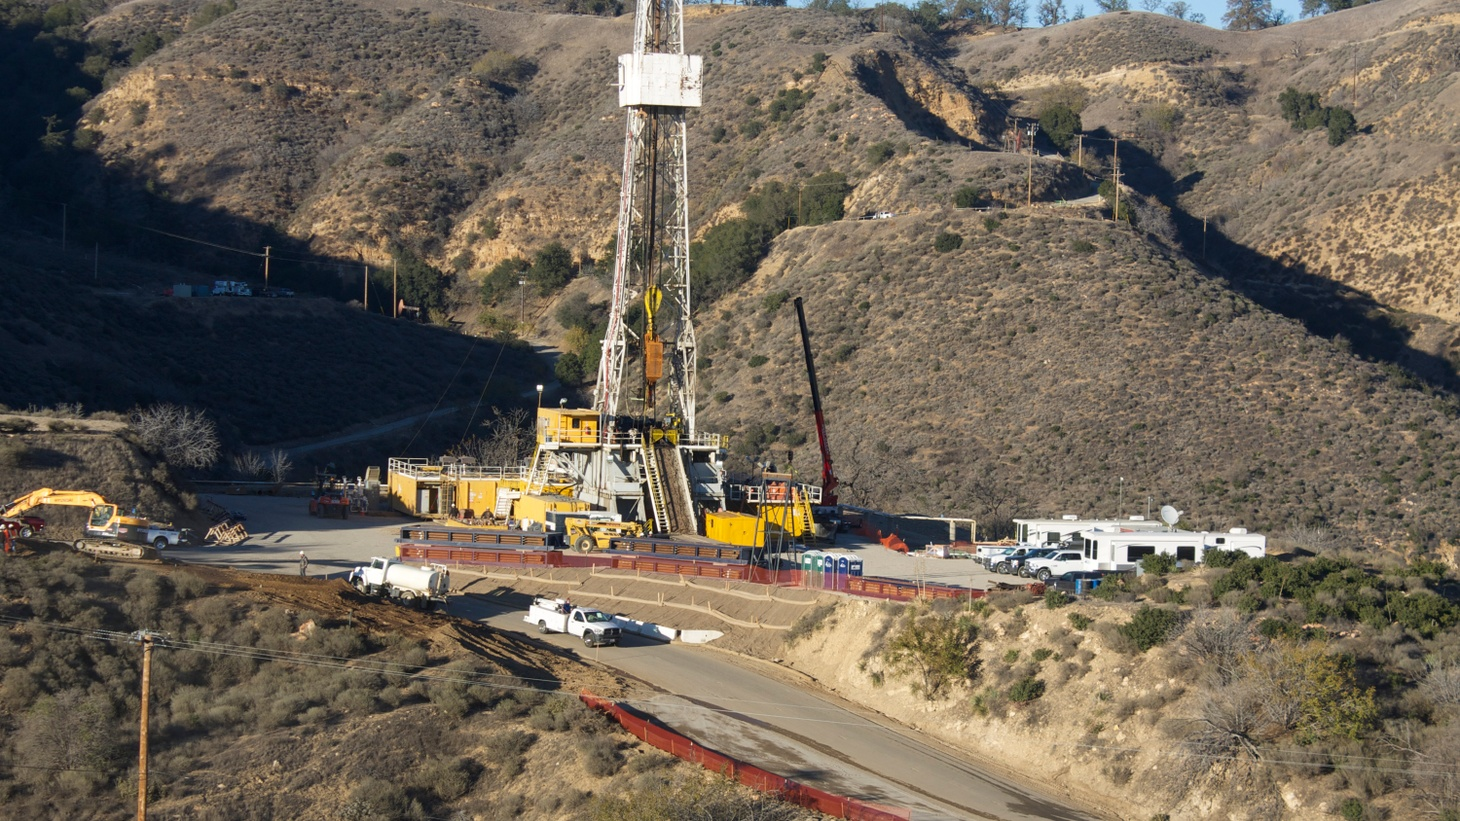 The continuing gas leak that's moving thousands of families out of their homes is an ecological disaster of national proportion. It constitutes 21% of the state's methane emissions and 2.3% of its entire carbon footprint. Now it turns out that Southern California Gas Company removed a safety valve that could have stopped the leaking from pipes it knew were not just decades old but likely to have been corroded.